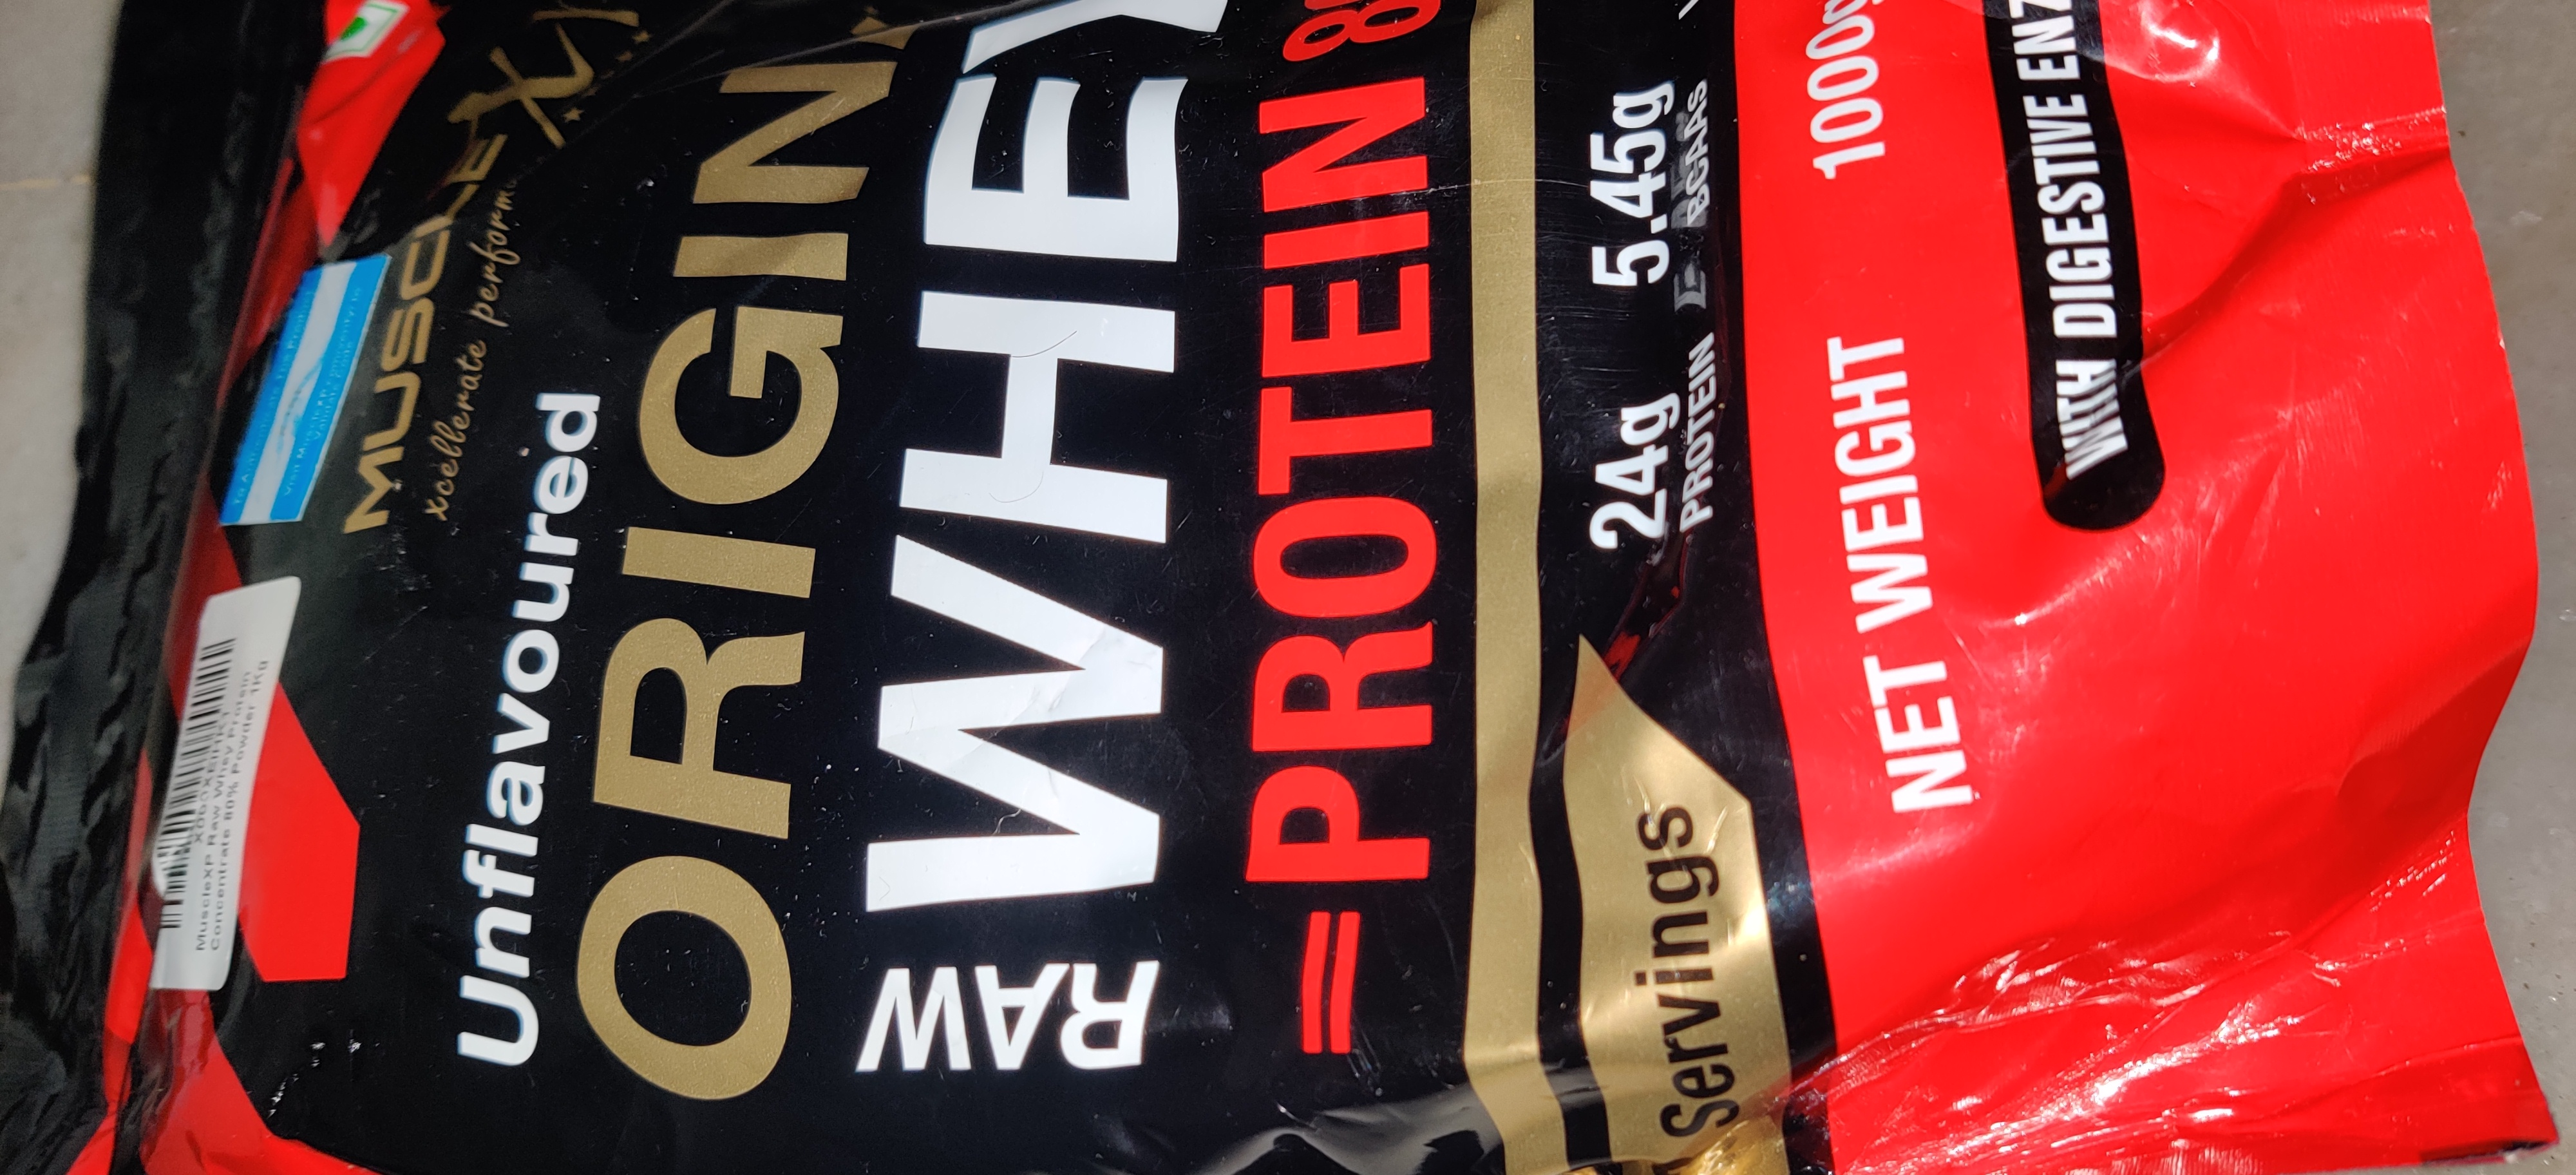 MuscleXP Raw Whey Protein 80% Powder Unflavoured-Good product-By radhima_puri